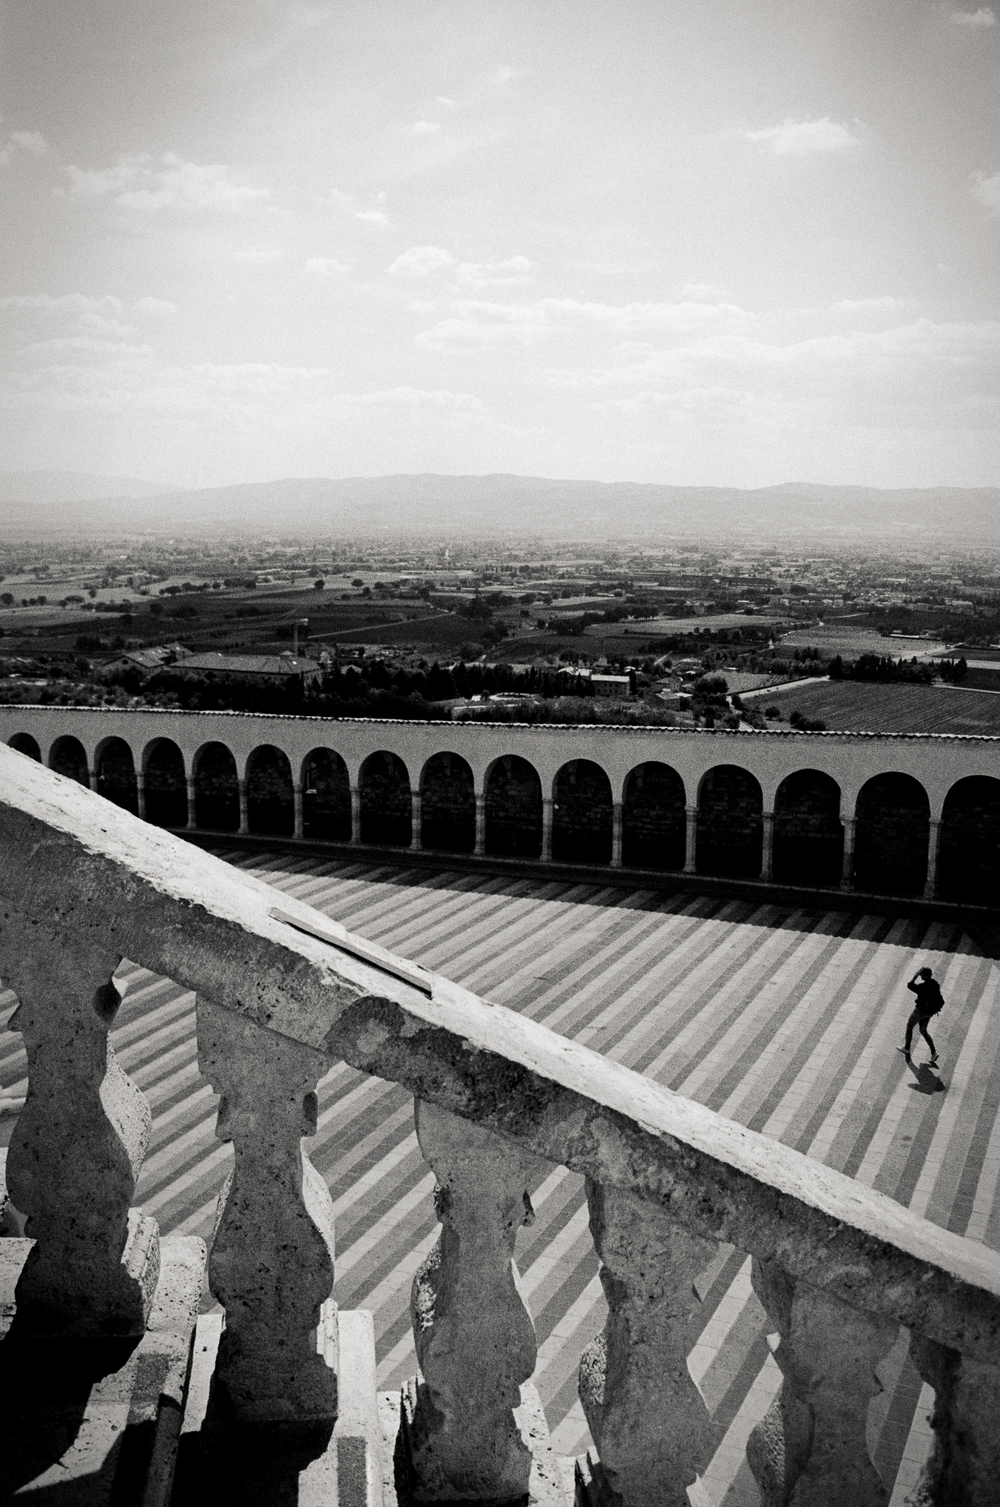 Basilica of Saint Francis, Assisi, Italy 2001.